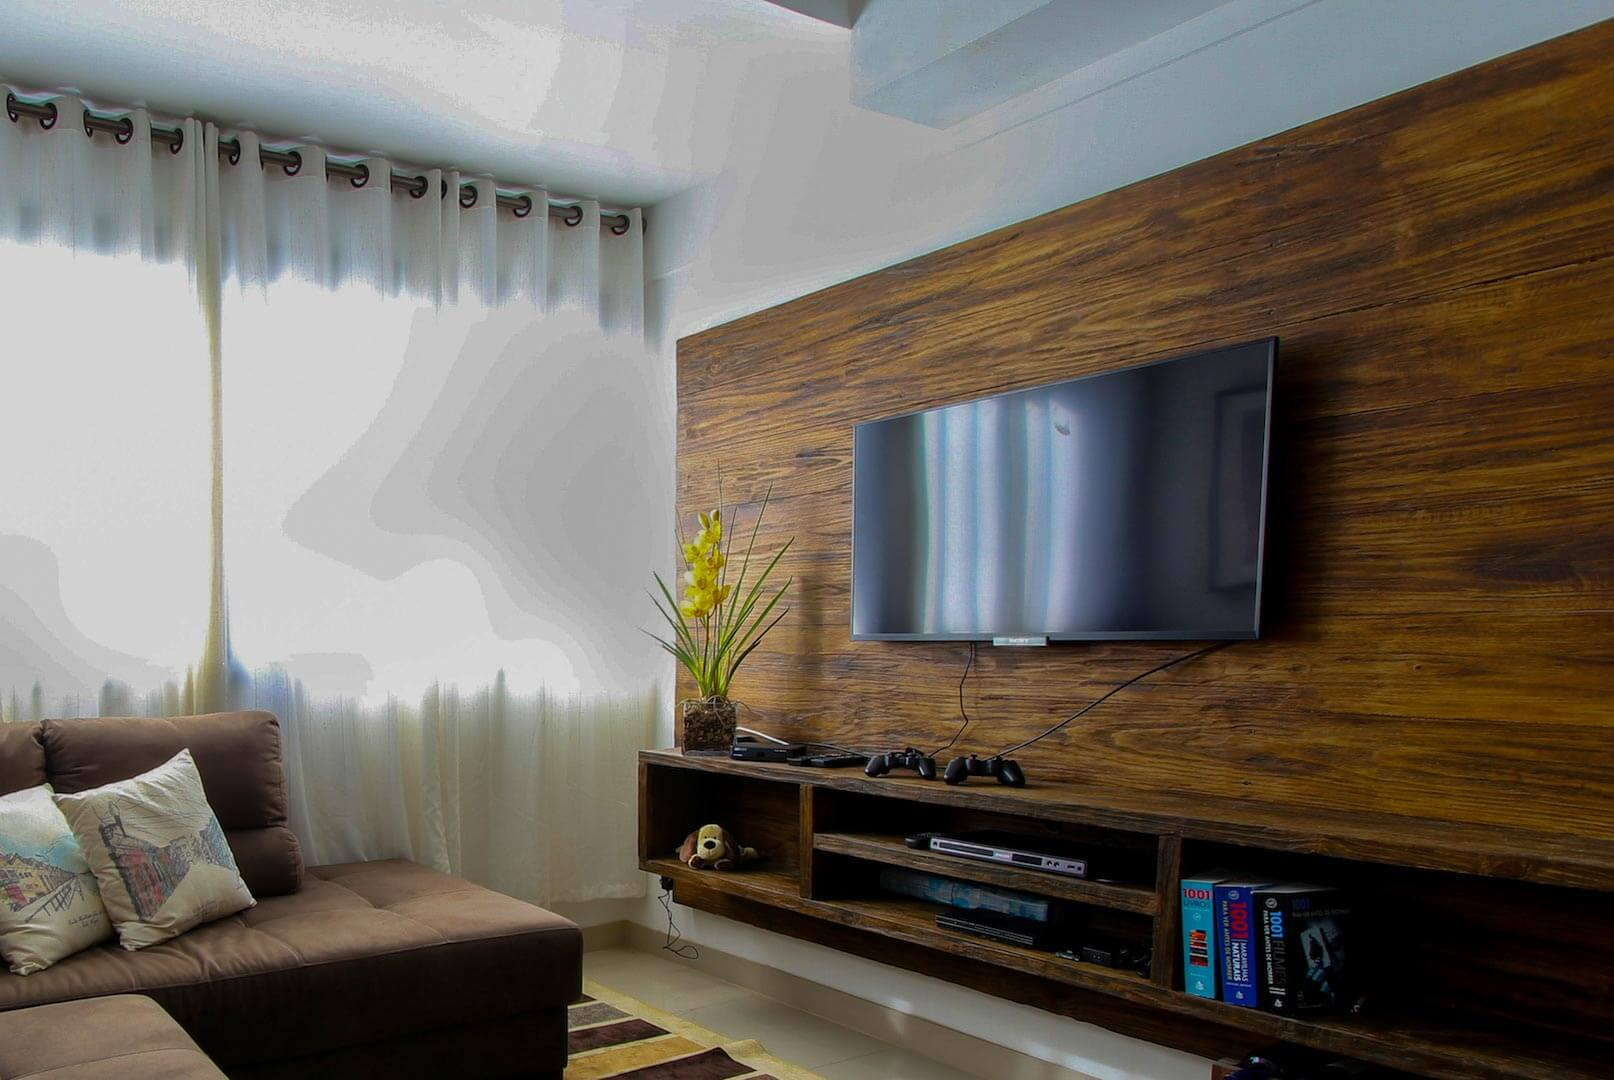 How to Mount a TV on the Wall By Yourself: Complete Guide